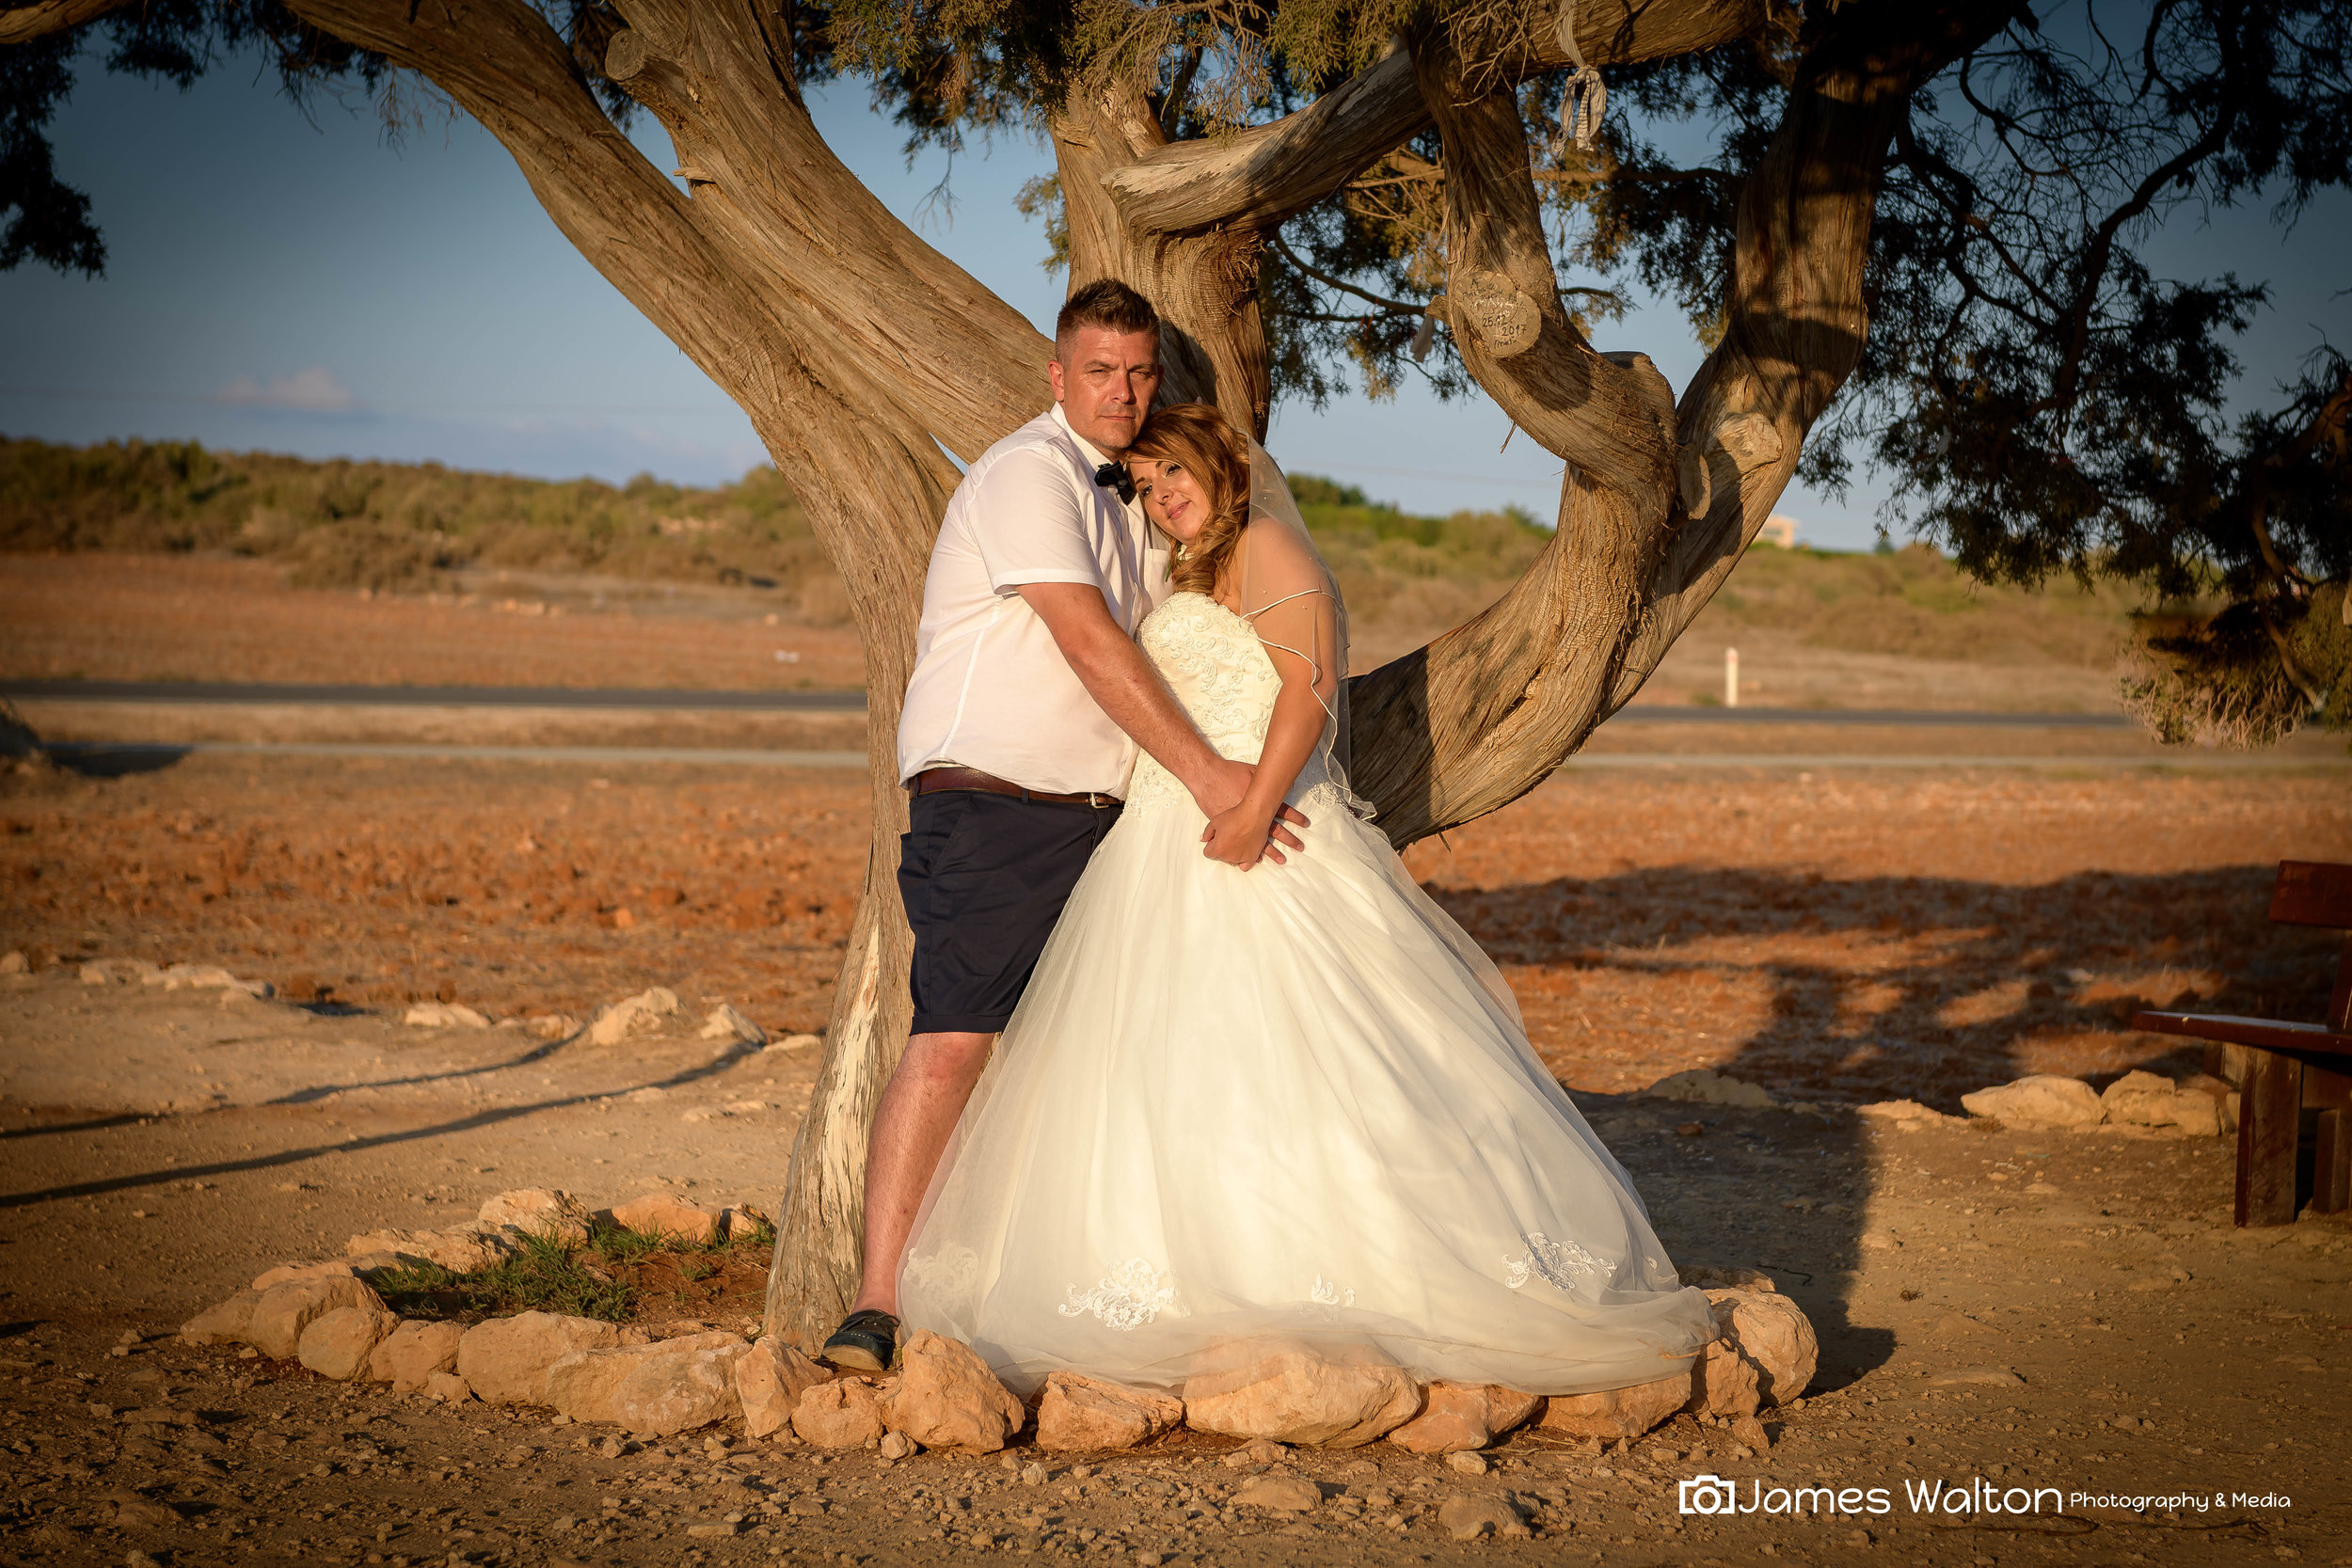 James and his team were amazing they made us feel so comfortable from the minute they arrived our photos and video are just beautiful they captured every single detail of our special day would highly recommend these guys thank you again - Kylie Reynolds September 2018